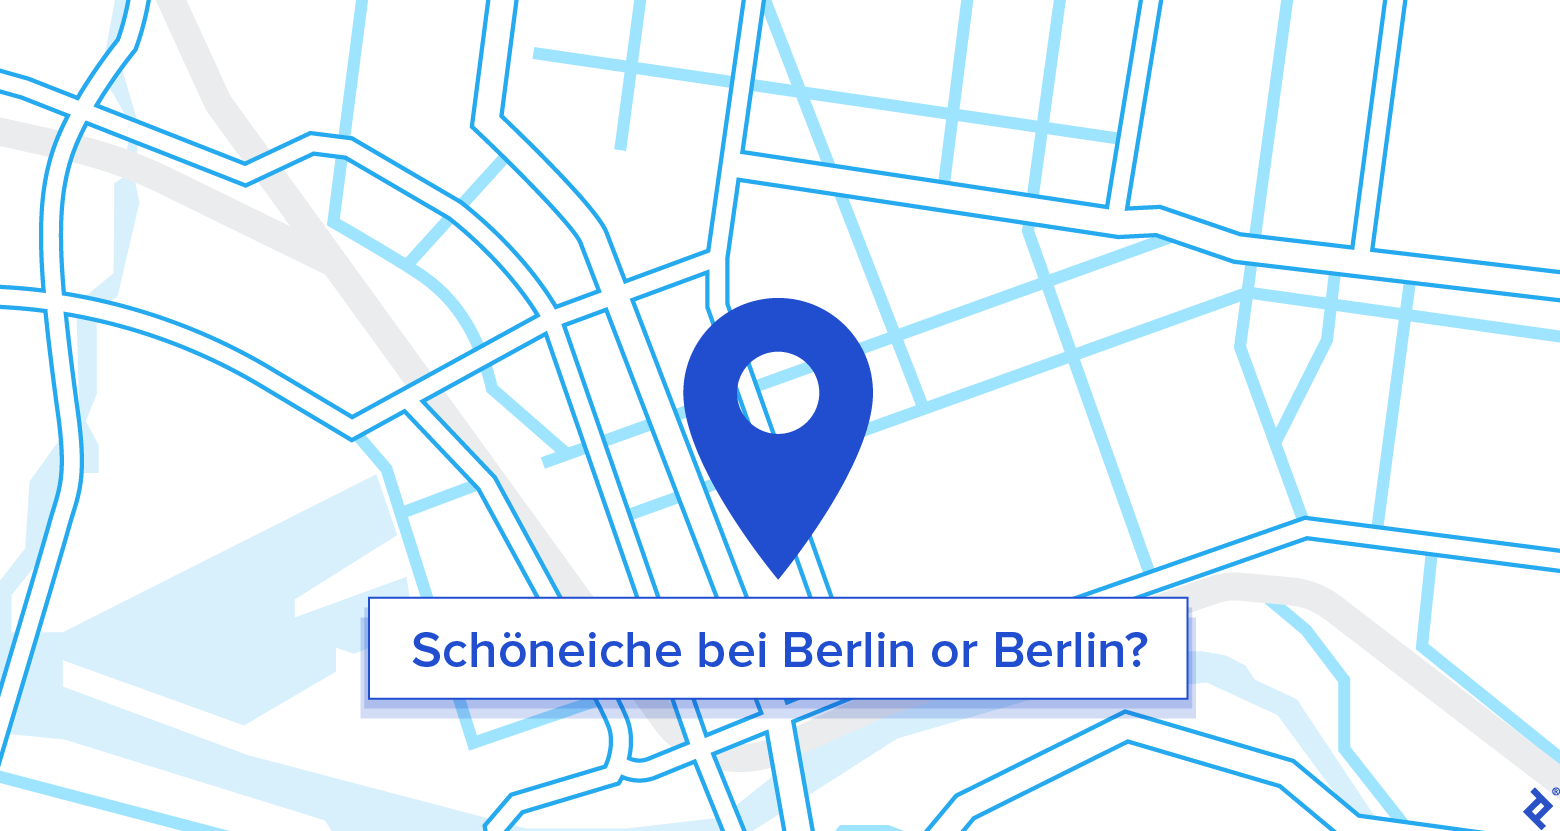 Berlin became Schöneiche bei Berlin due to the major translation issues in Apple Maps app after its release in 2012